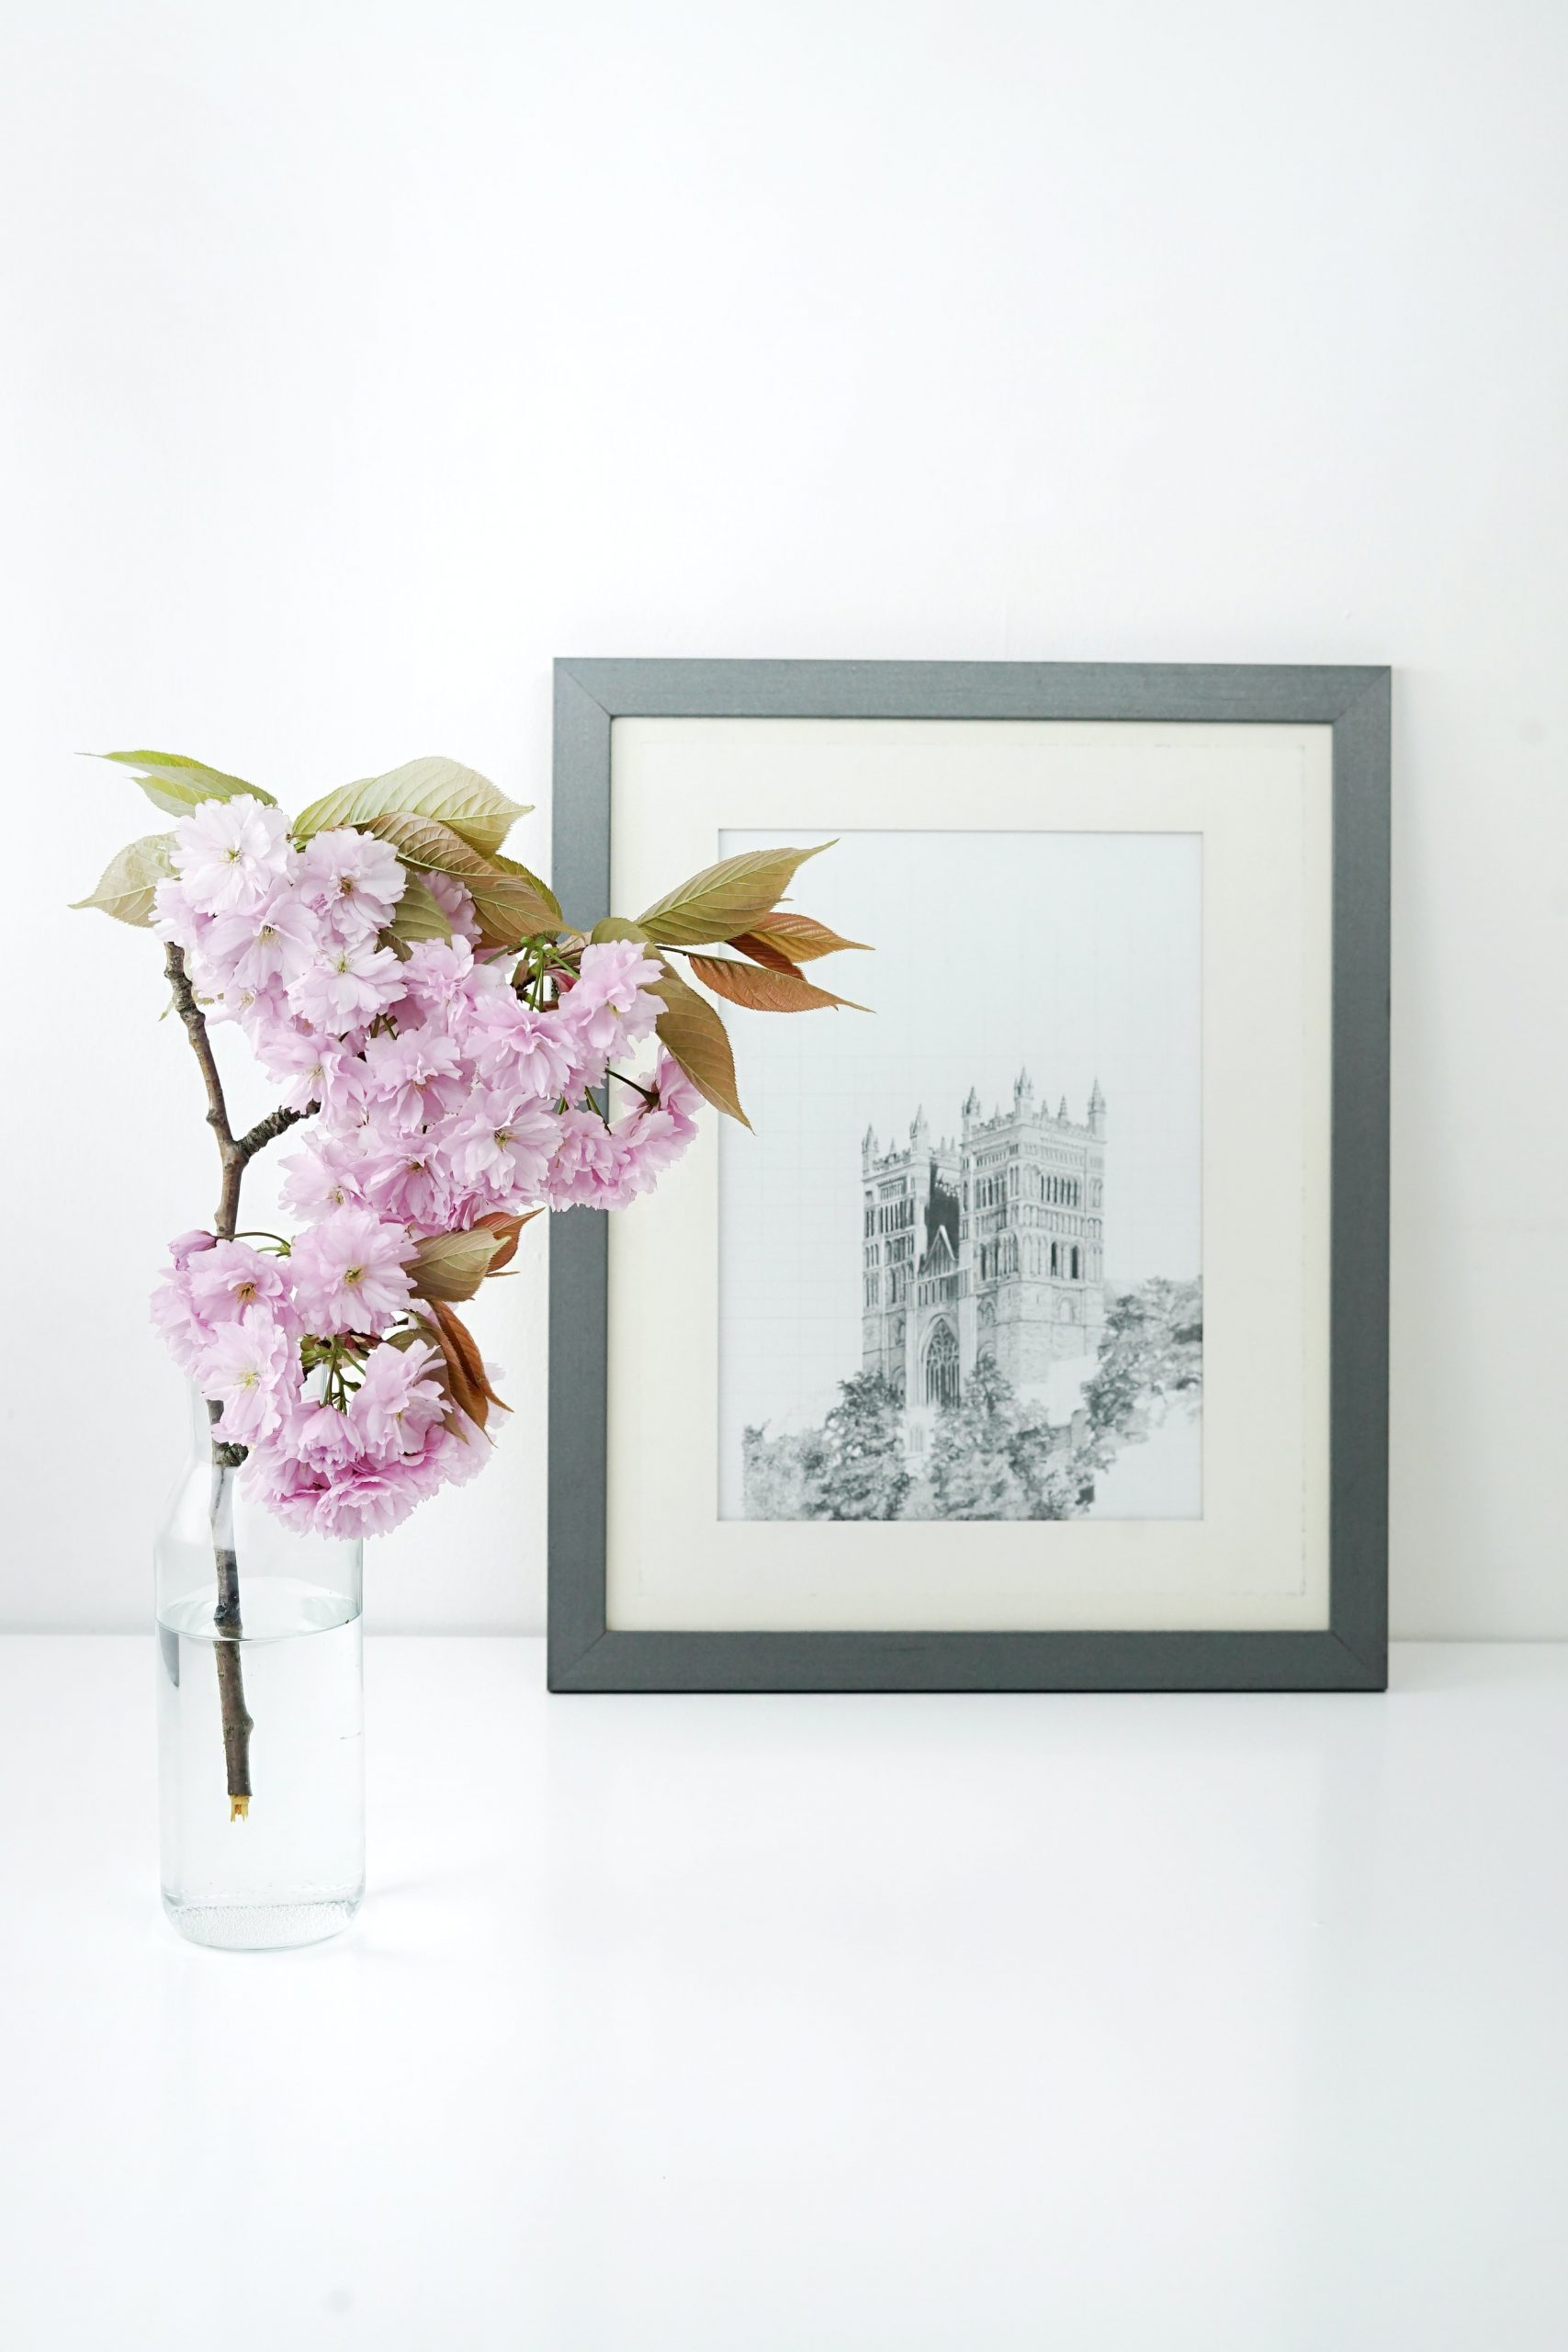 Flowers placed inside water in a glass bottle and a black and white photo of a monument in the background.